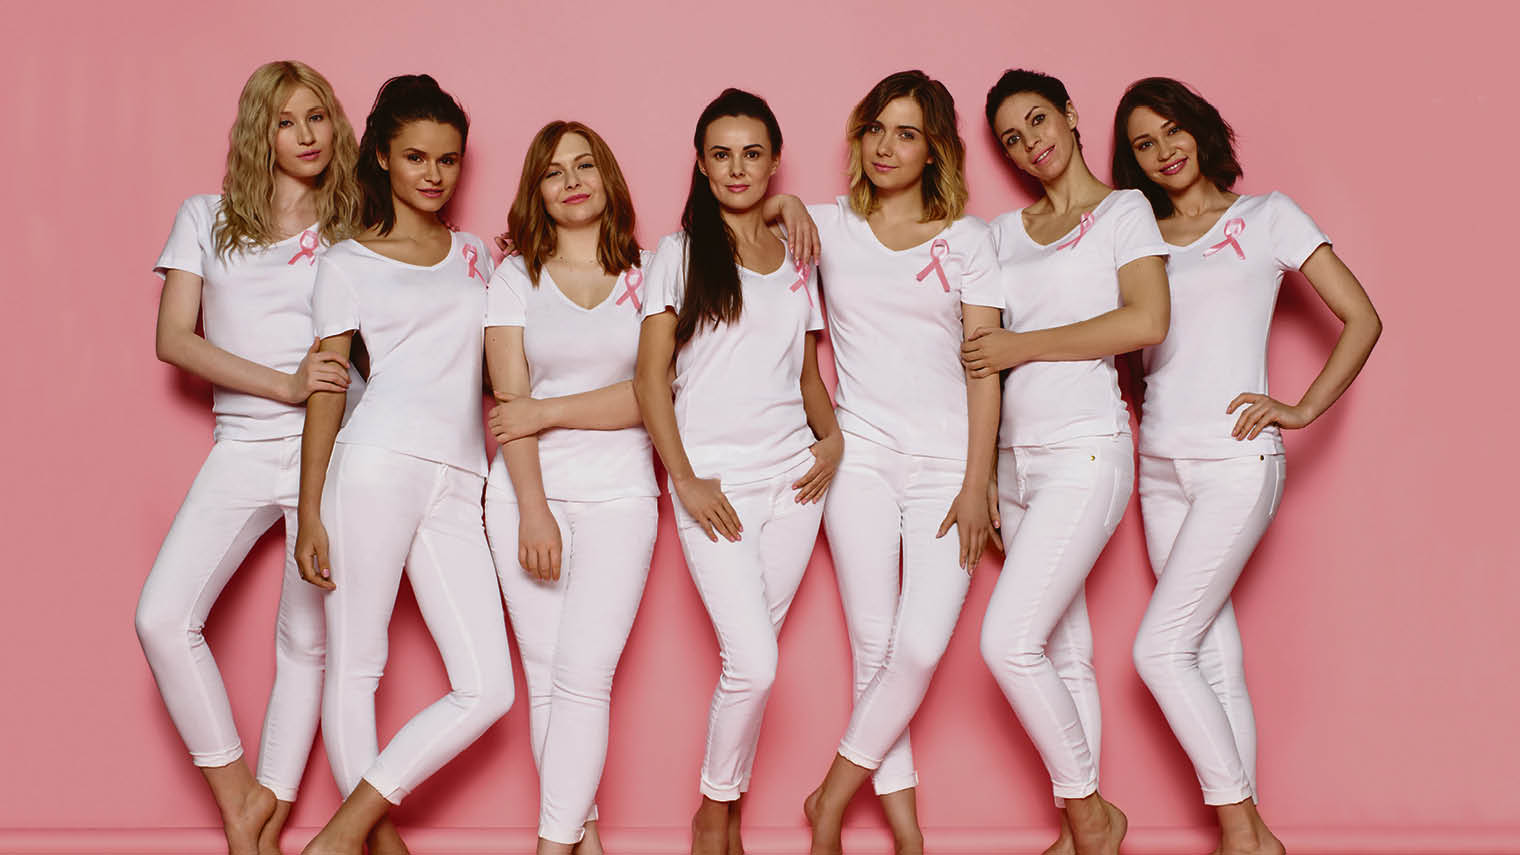 Avon's Breast Cancer Crusade supports millions of women across the globe